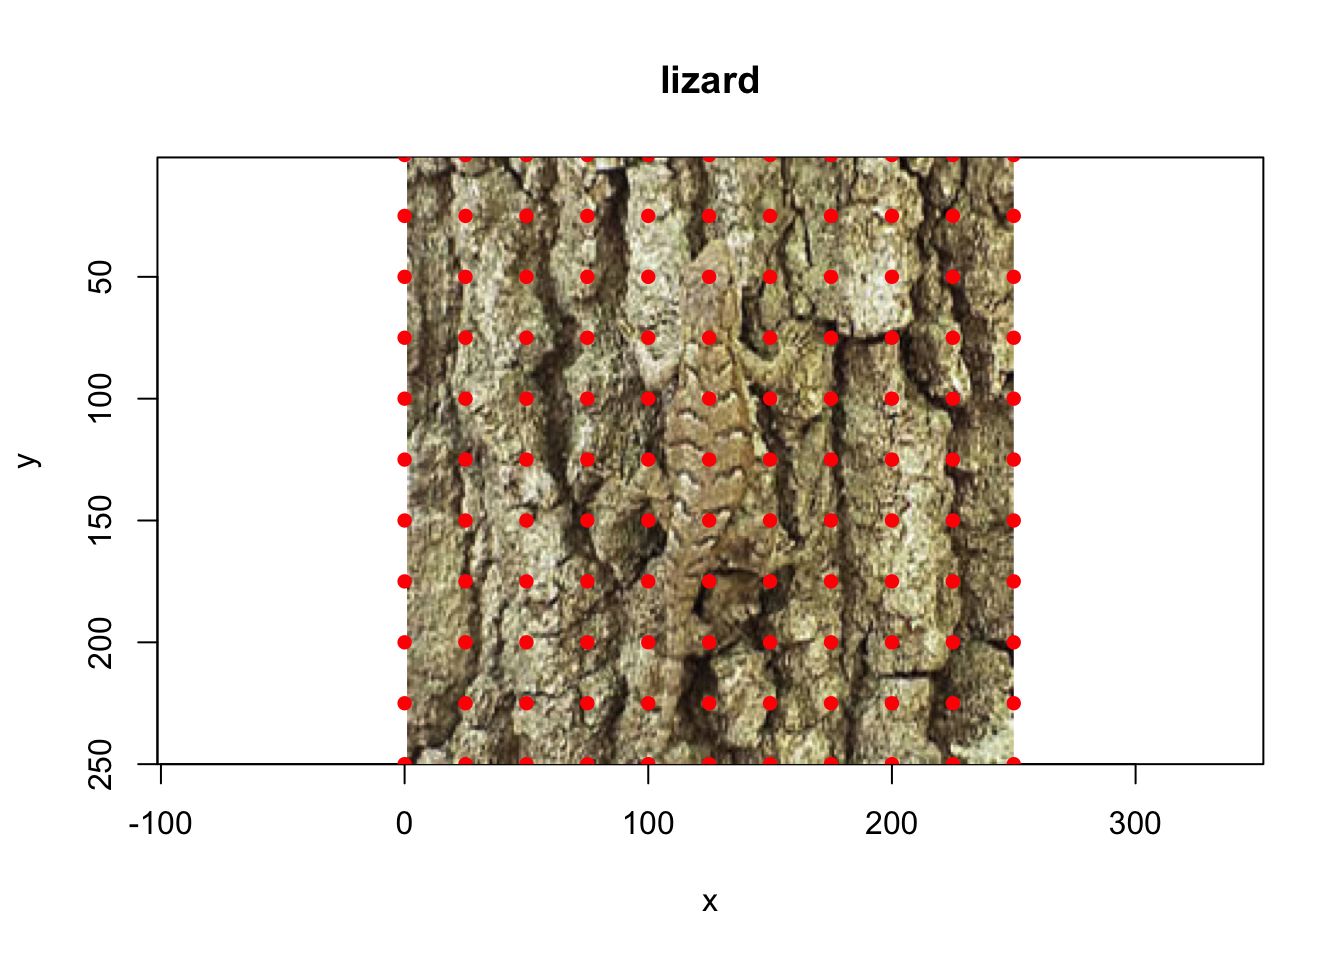 A cryptic lizard, along with a possible sampling grid for spectral measurement.